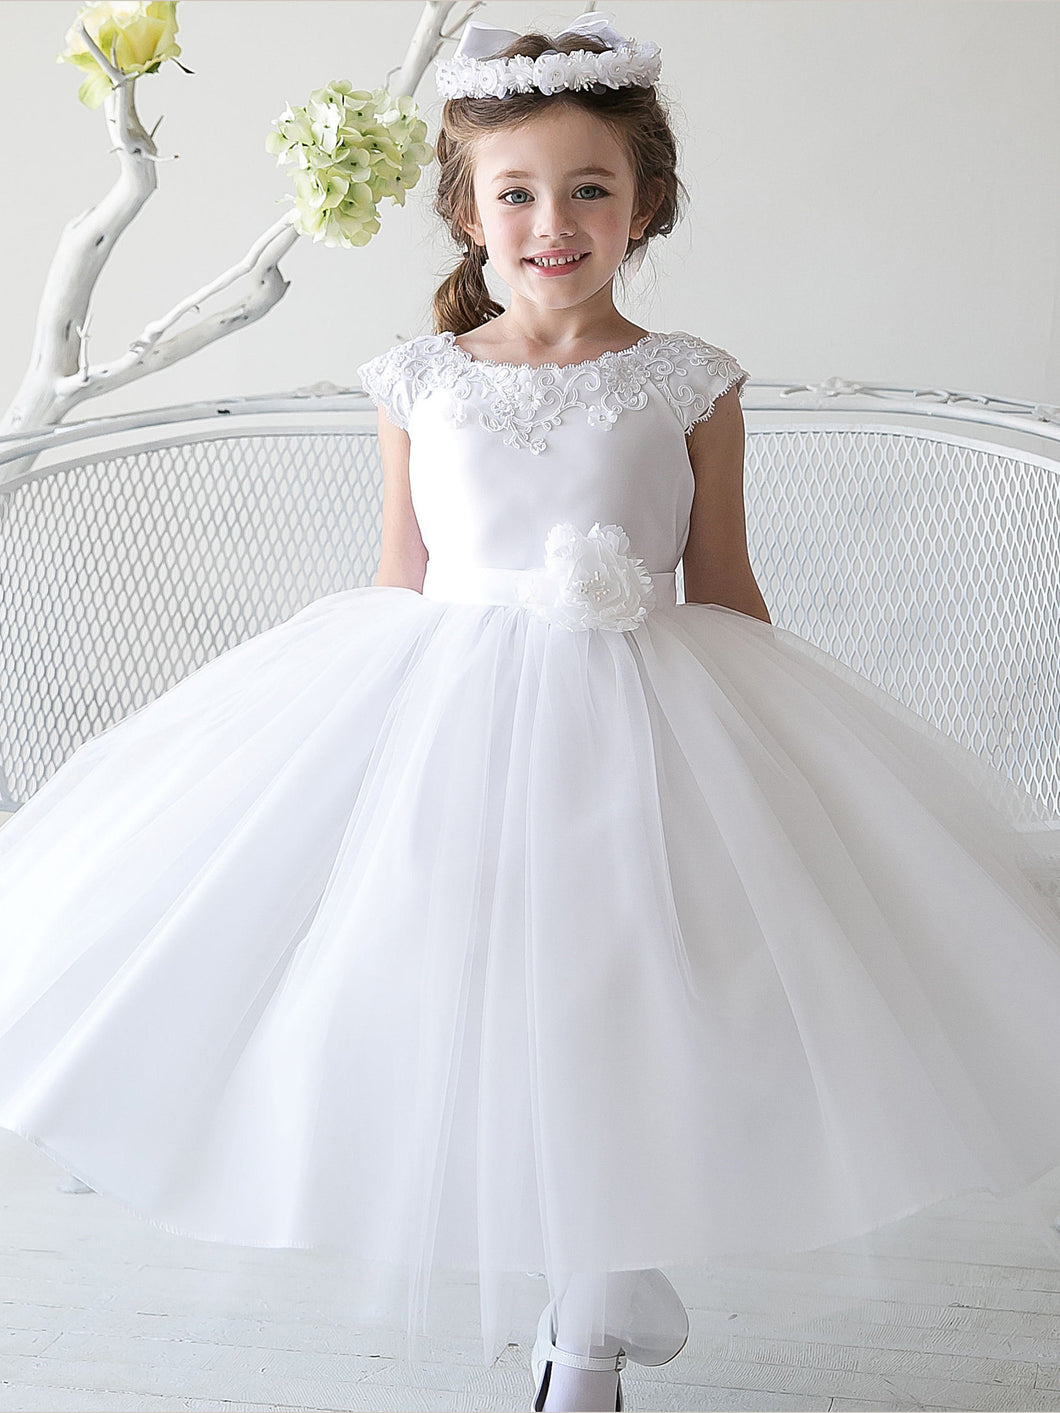 2017 Flower Girl Dresses Tea-length Ribbons Belt White Tulle And Satin JKF032